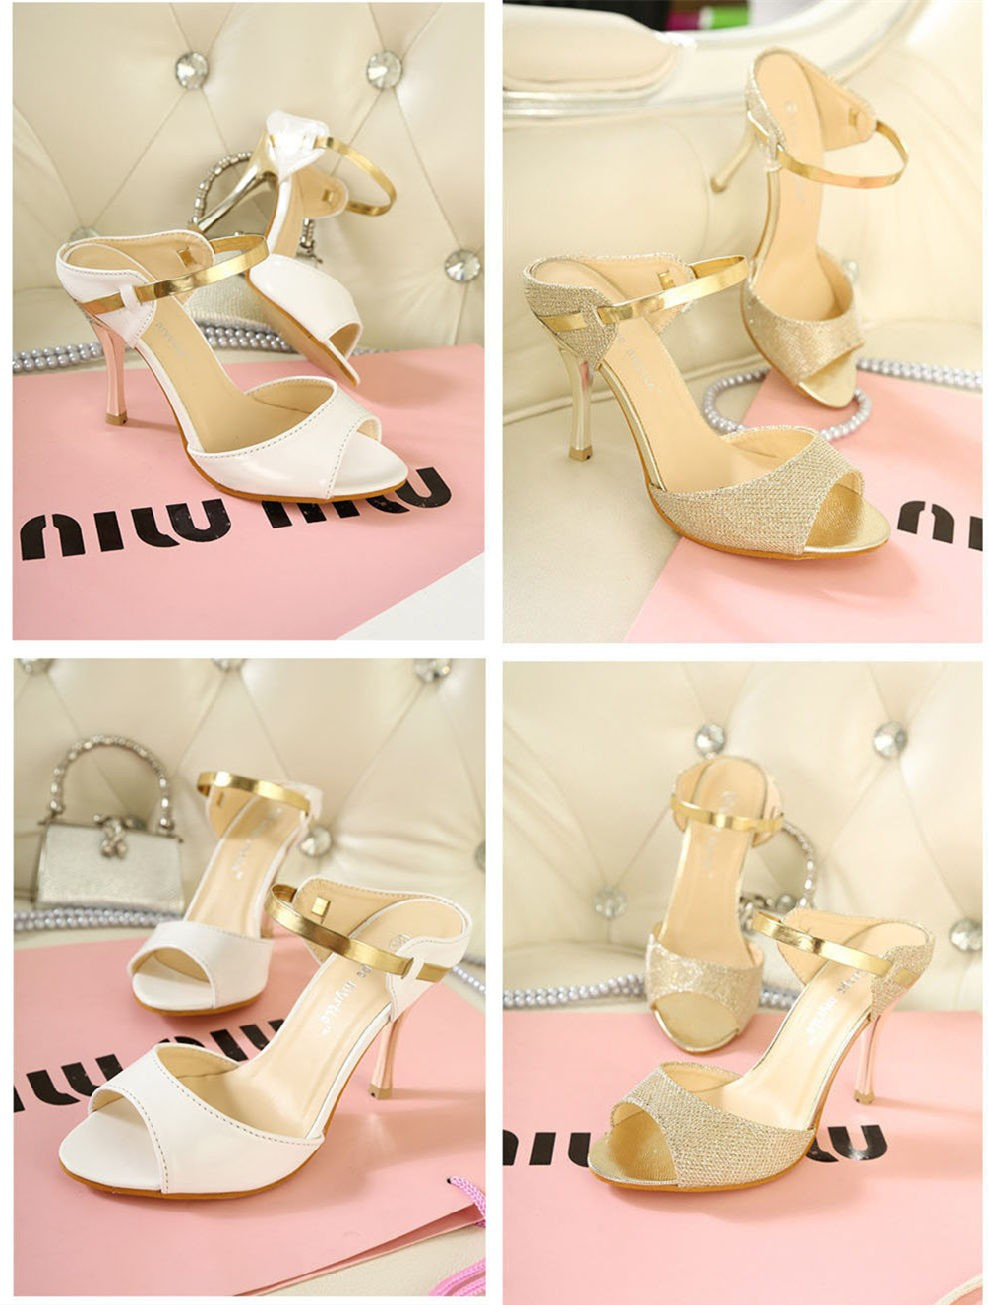 Summer Fashion Sexy Women High Heels PU Leather Peep Toe Slingback Shoes Sandals Golden